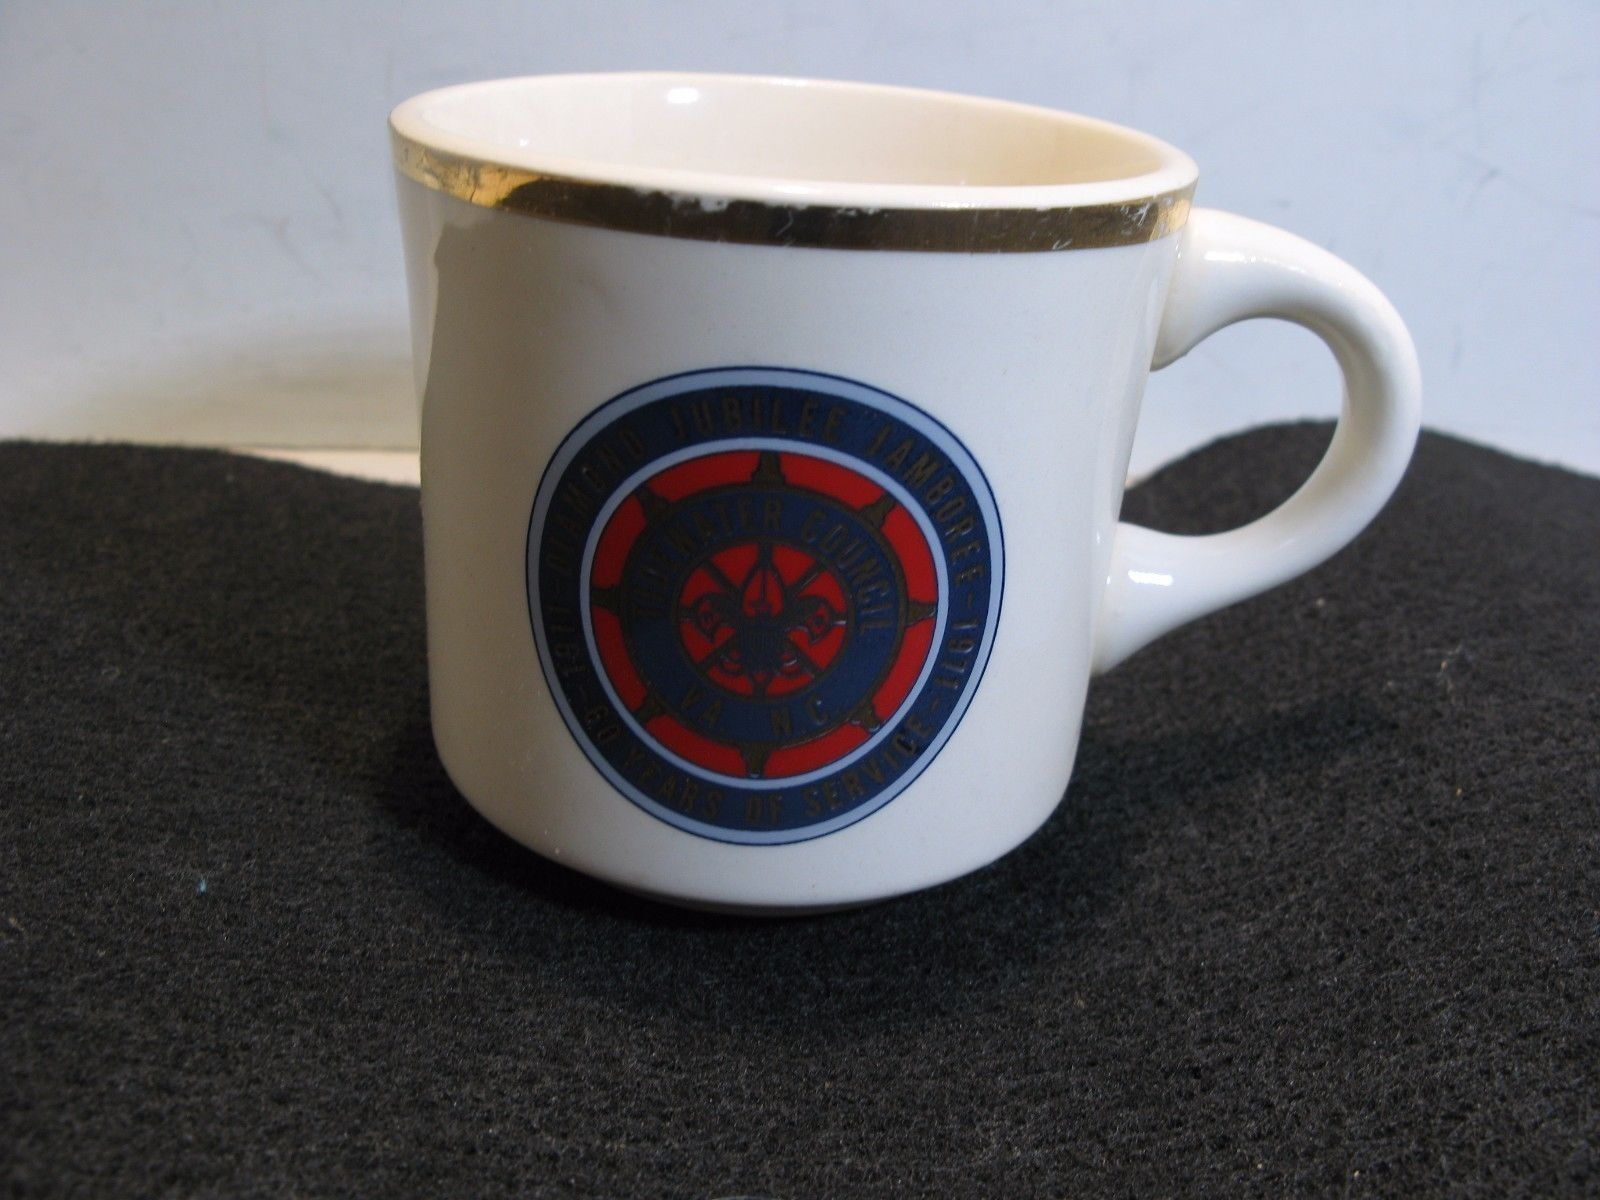 Bsa Boy Scouts Coffee Mug Cup Diamond Jubilee Jamboree 60 Years